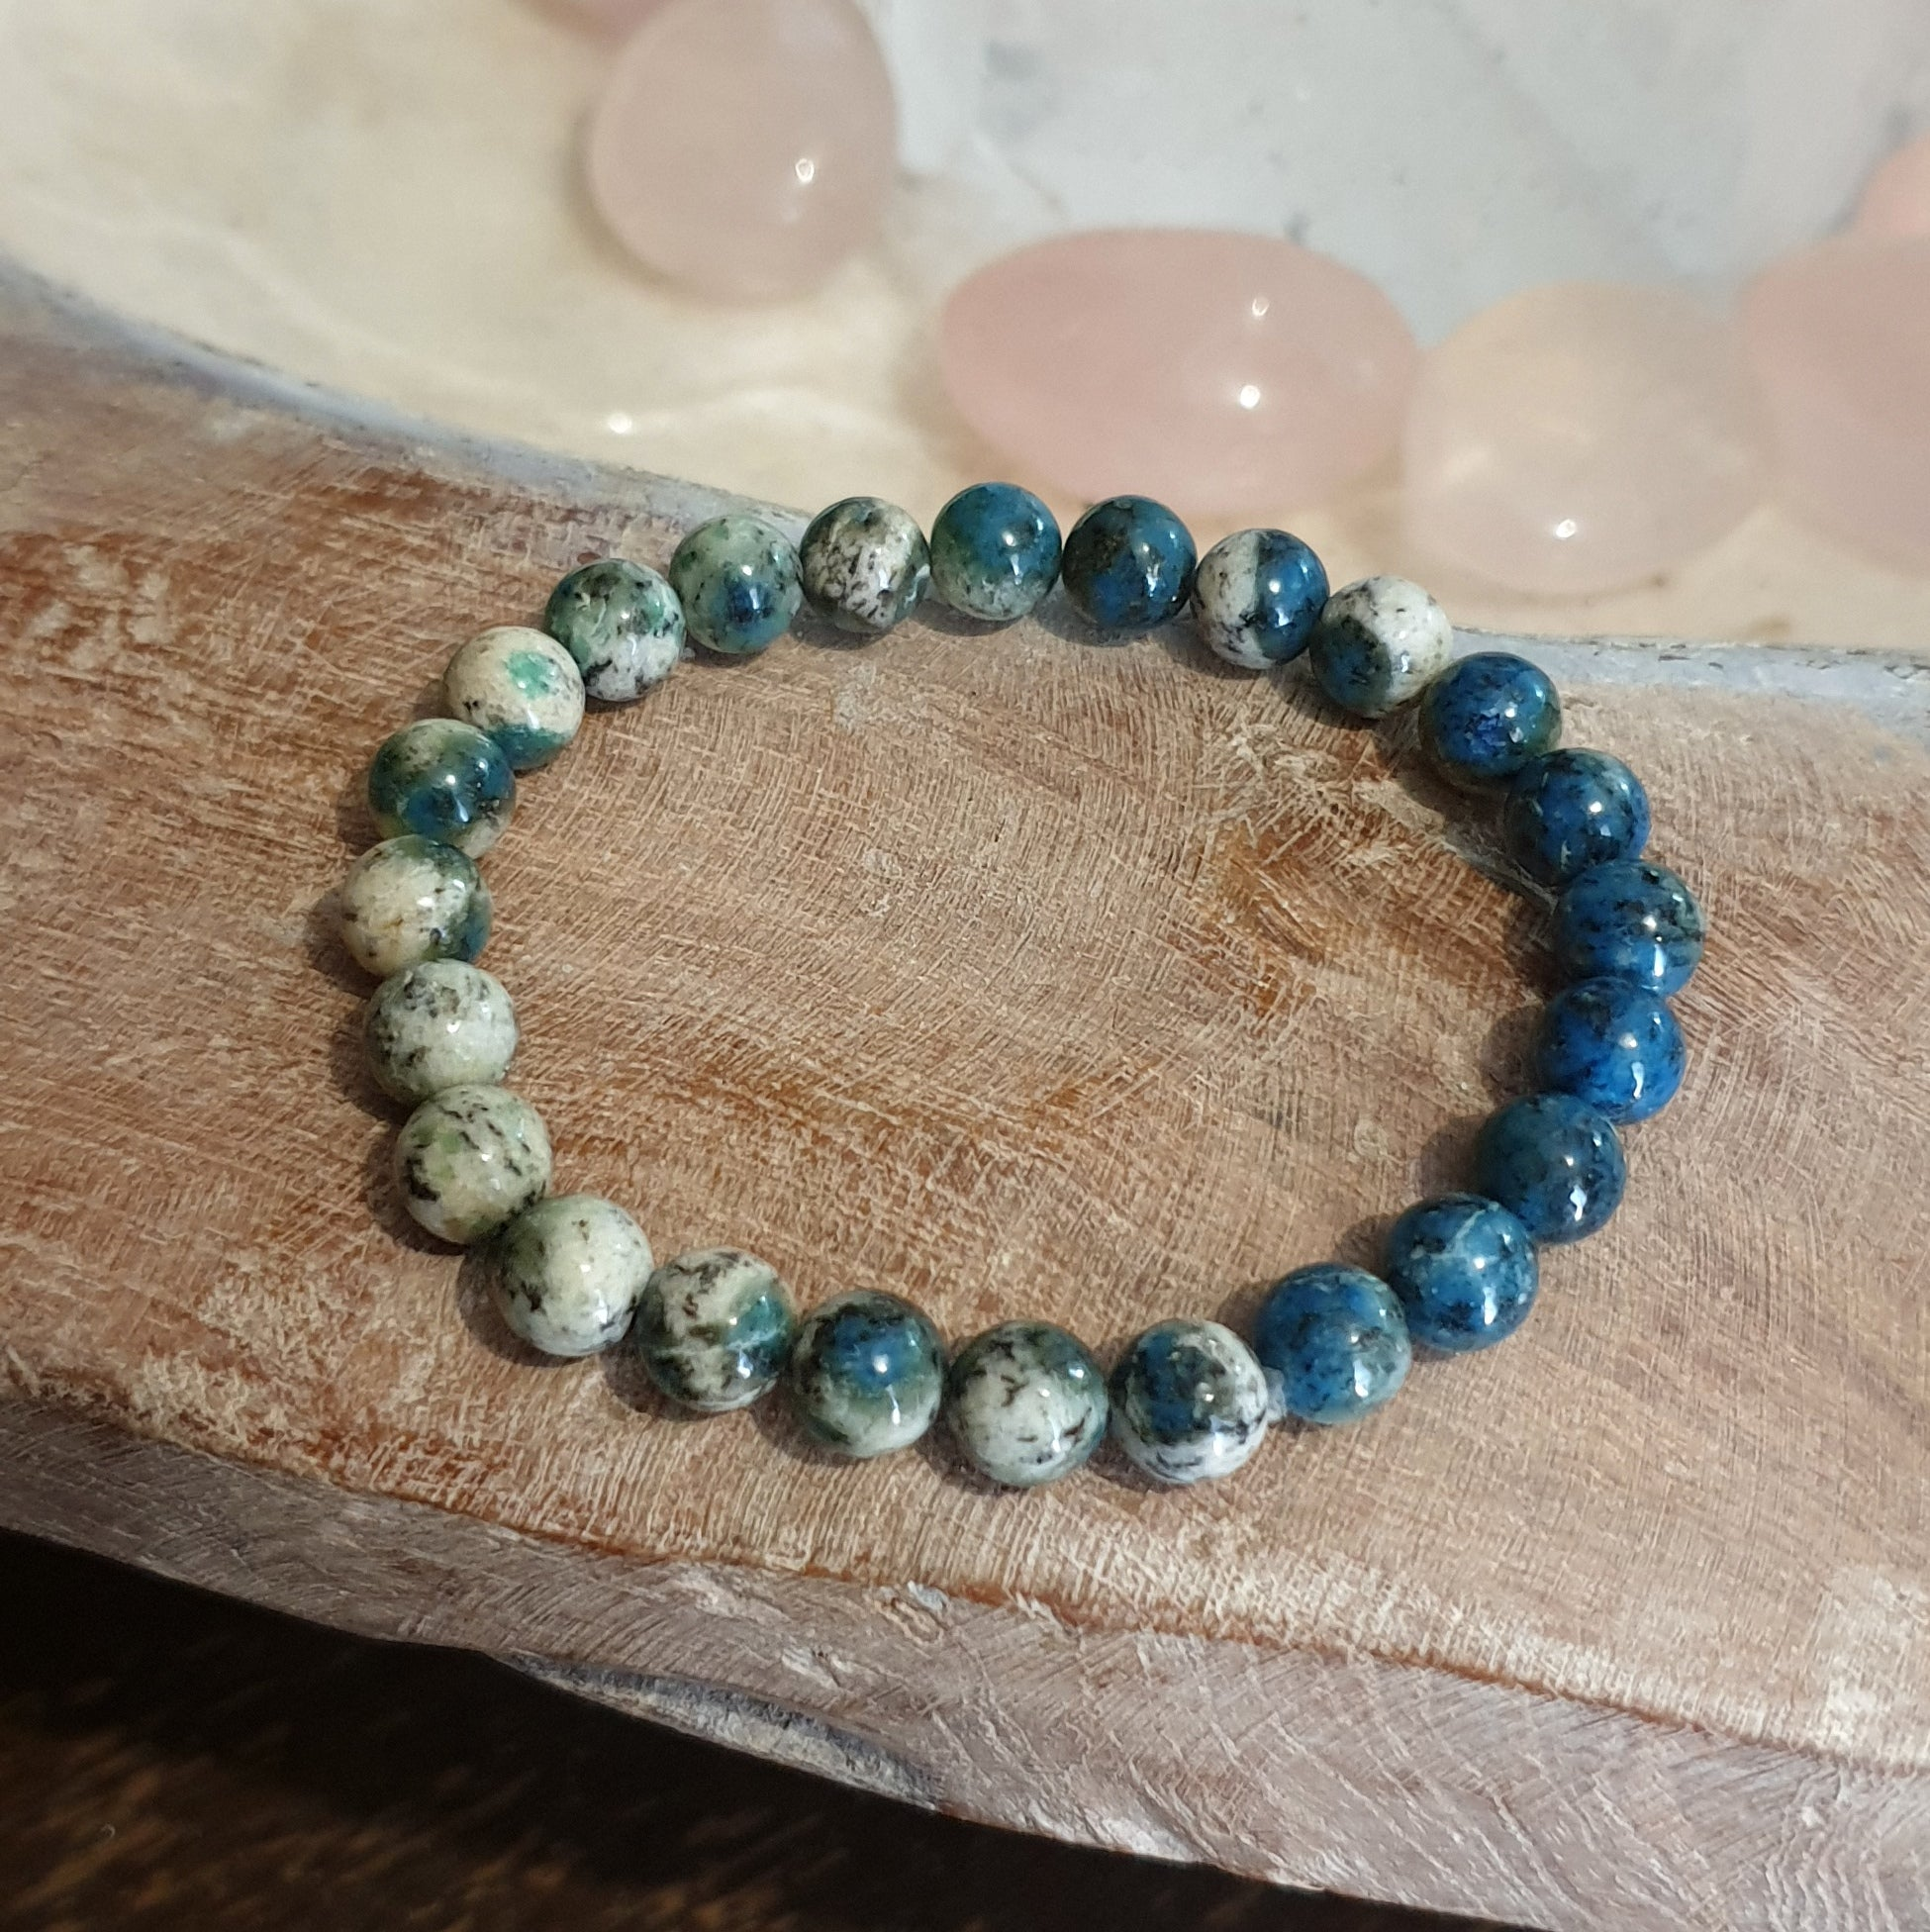 K2 Afghanite Polished Beaded Stretch Bracelet - Illiom Crystals - Afterpay Available